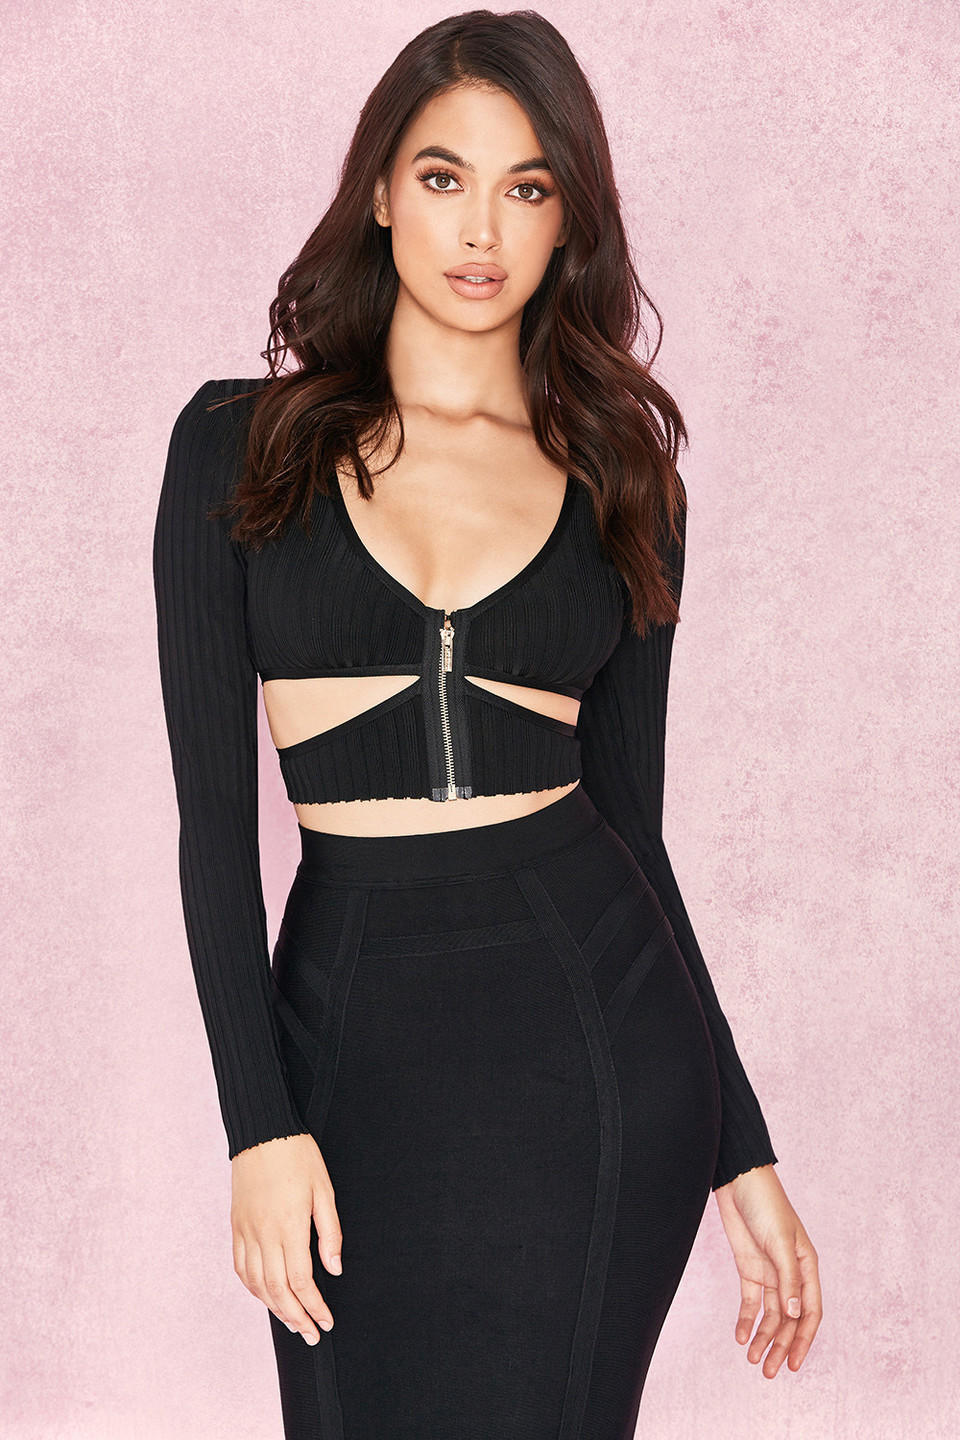 Kitana Black Ribbed Bandage Cut Out Cropped Top